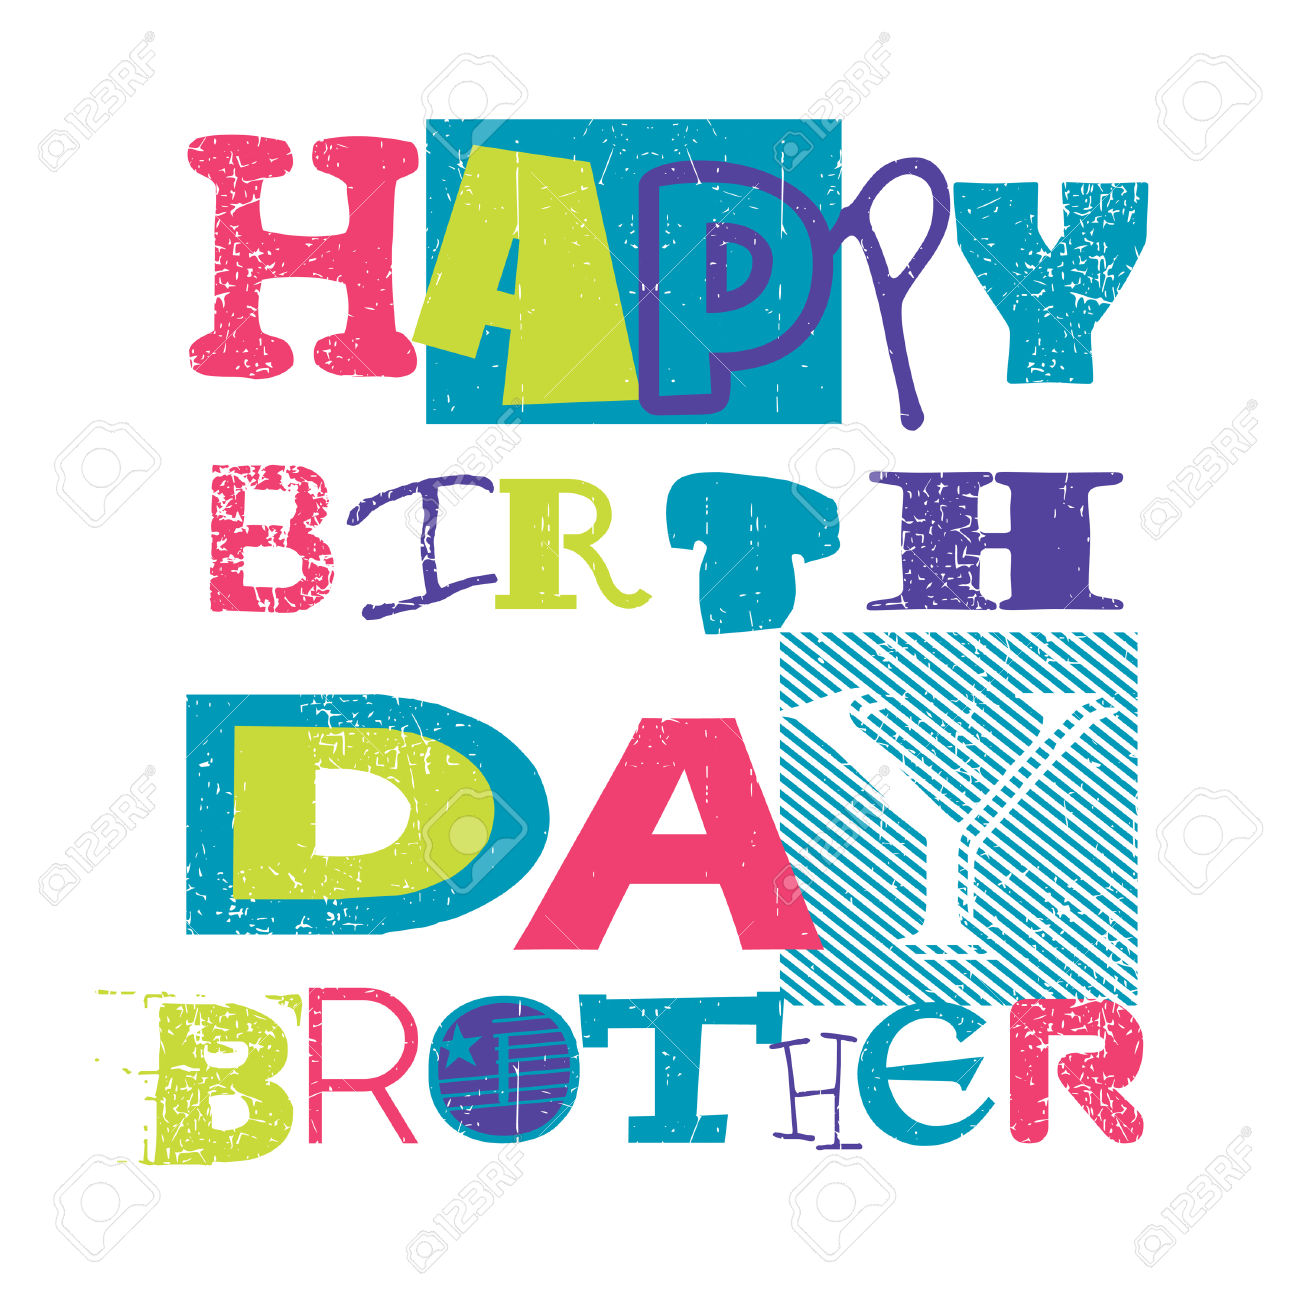 Brother tale related for. Brothers clipart happy birthday